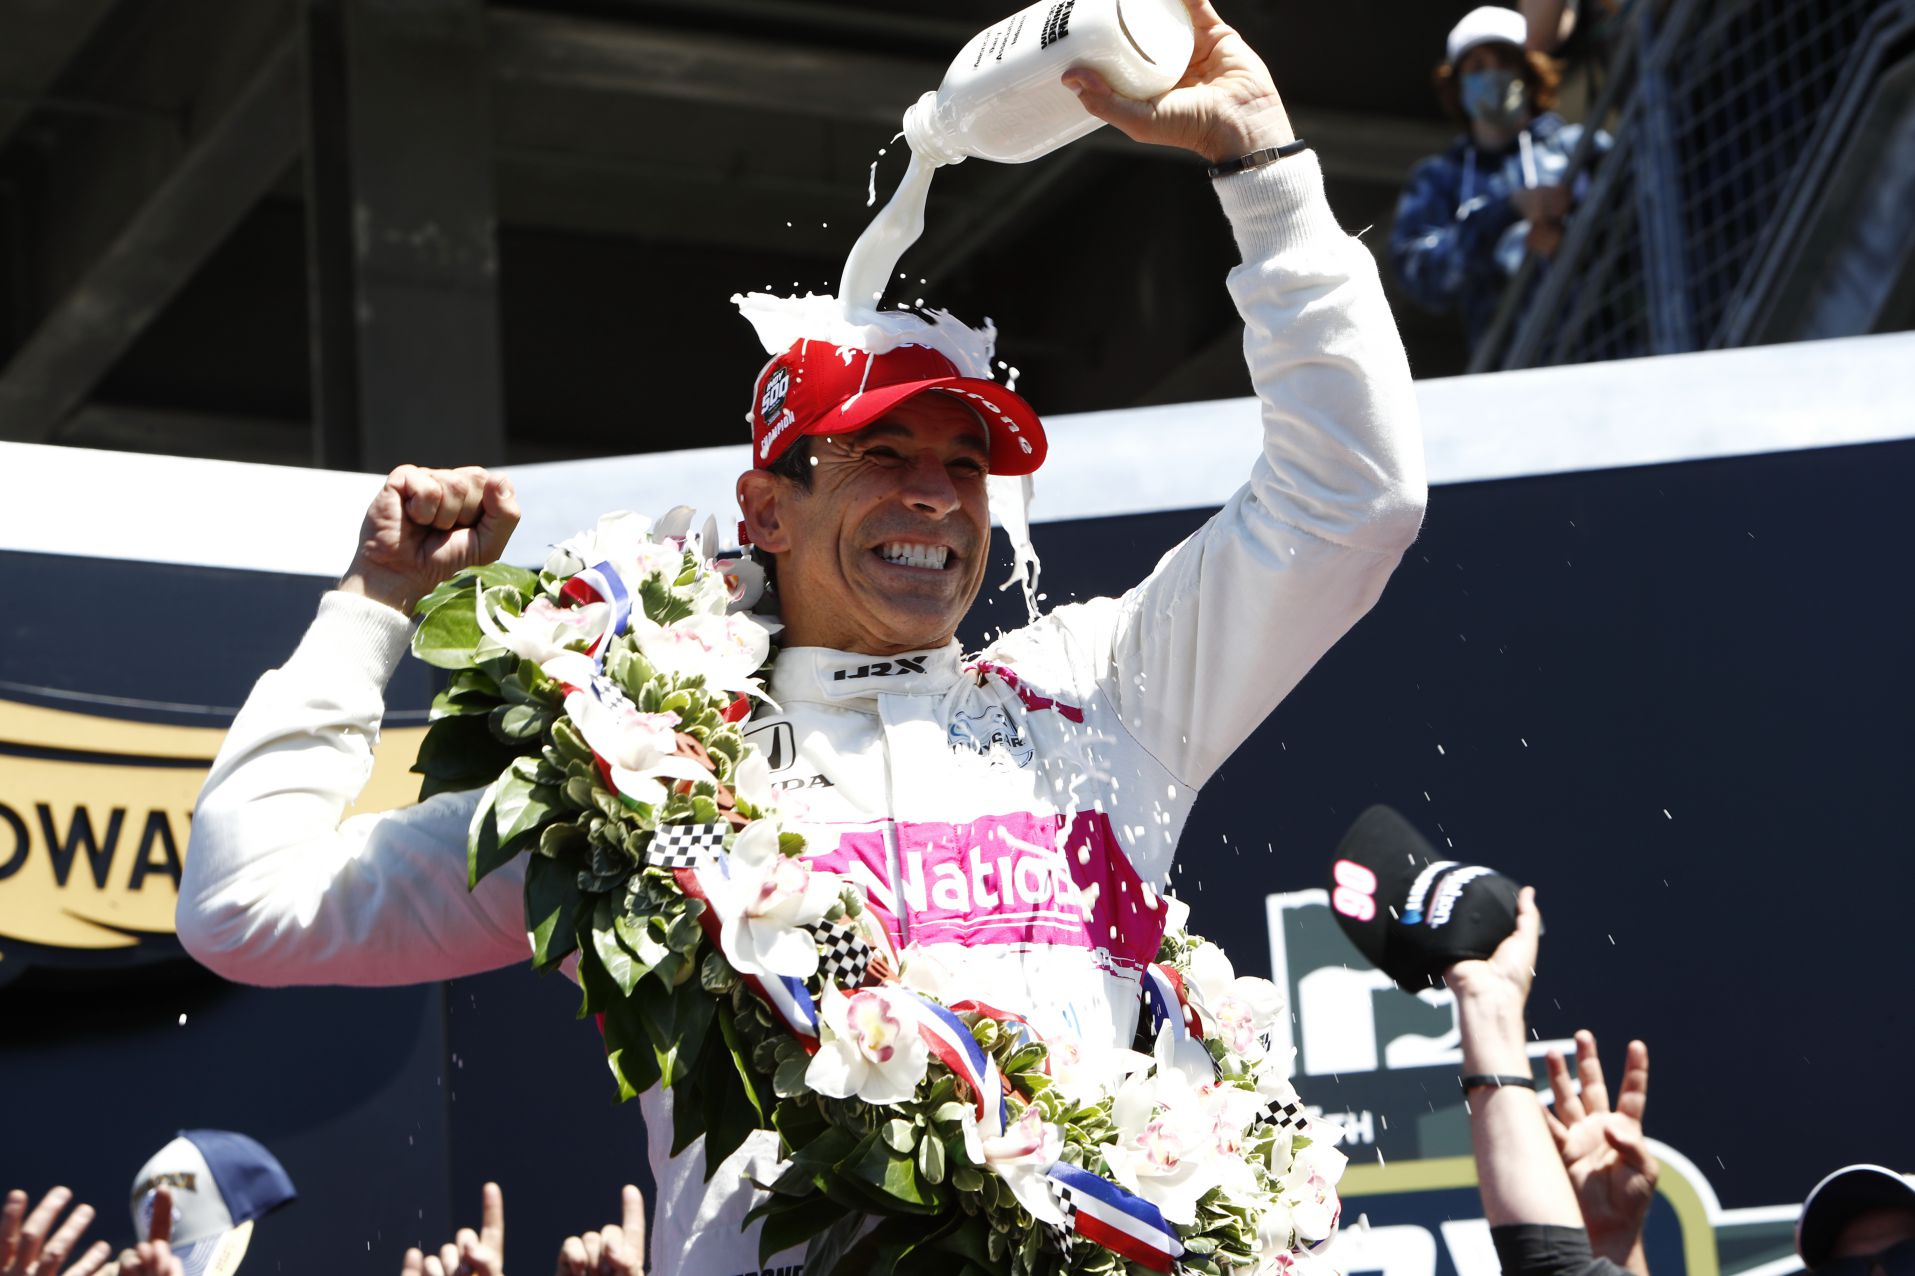 Castroneves Wins Indy 500 Thriller To Become Forth Four-Time Winner - RacingNation.com